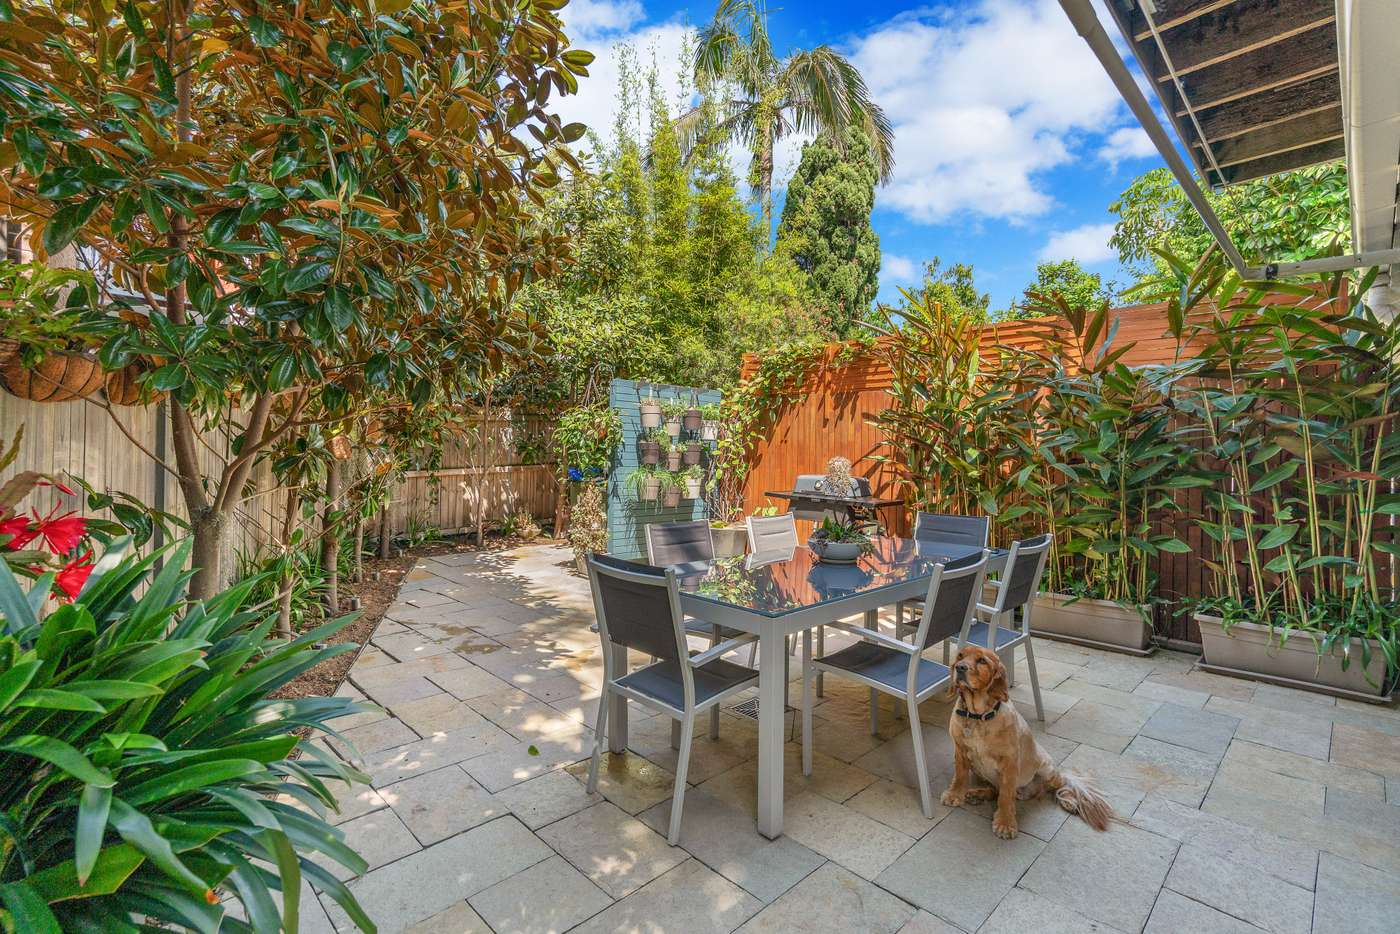 Main view of Homely house listing, 32 Plowman Street, North Bondi NSW 2026